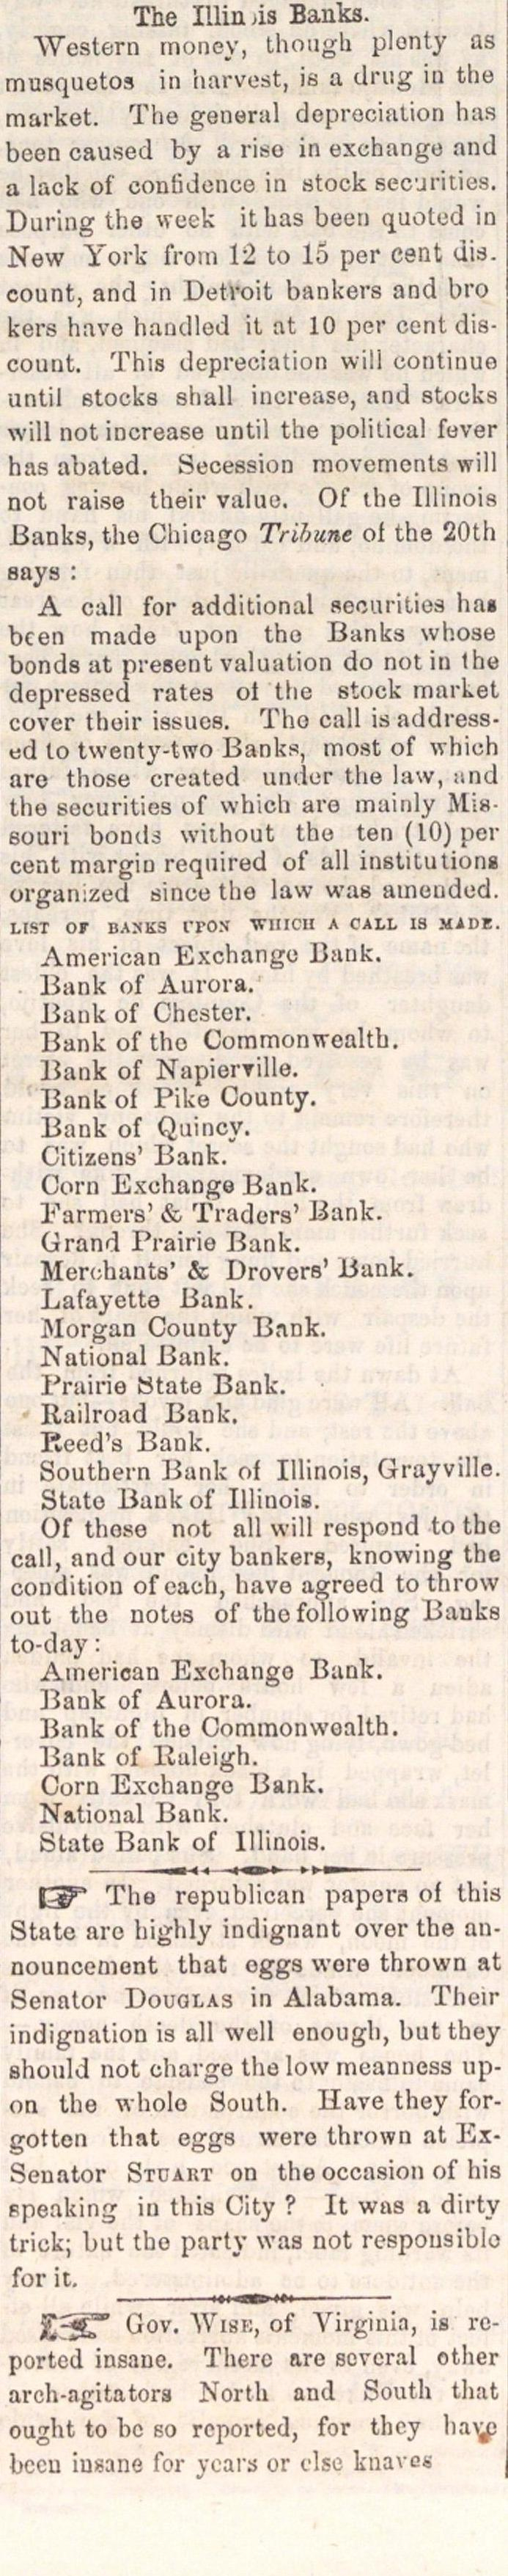 The Illinois Banks image